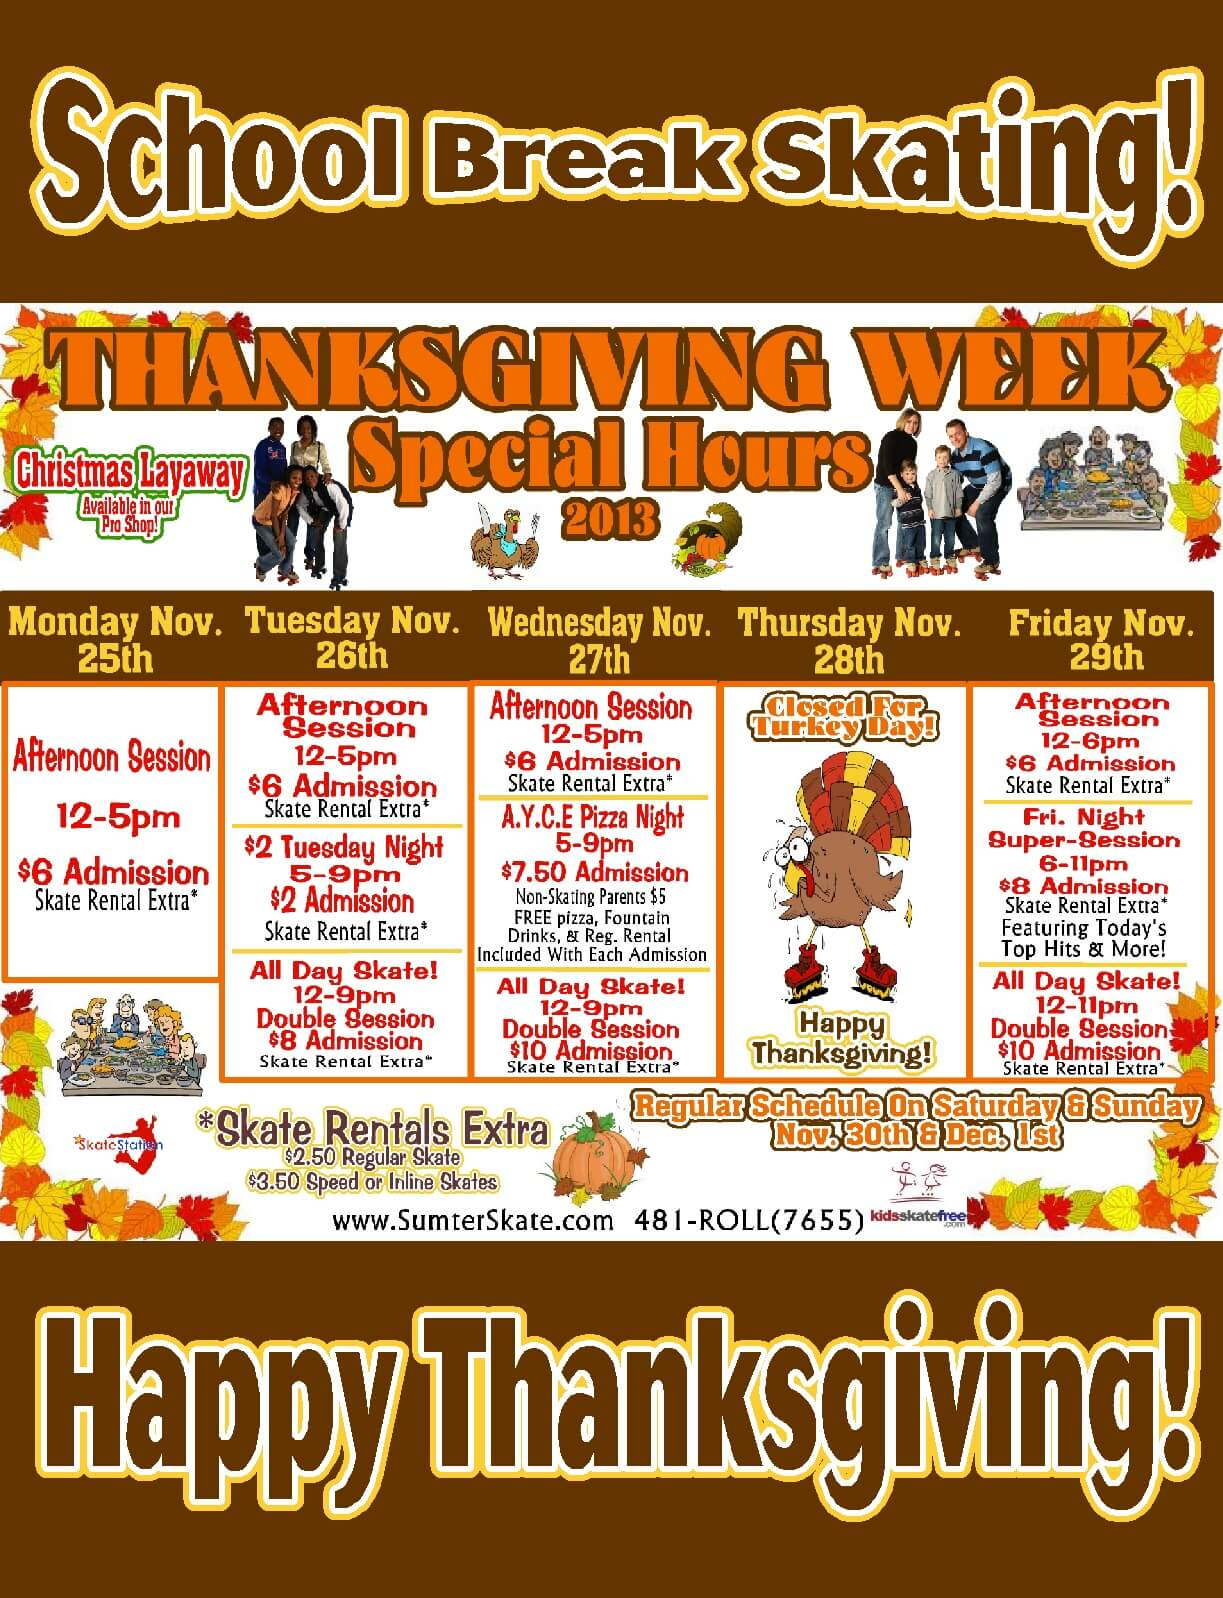 Thanksgiving Schedule 2013 website